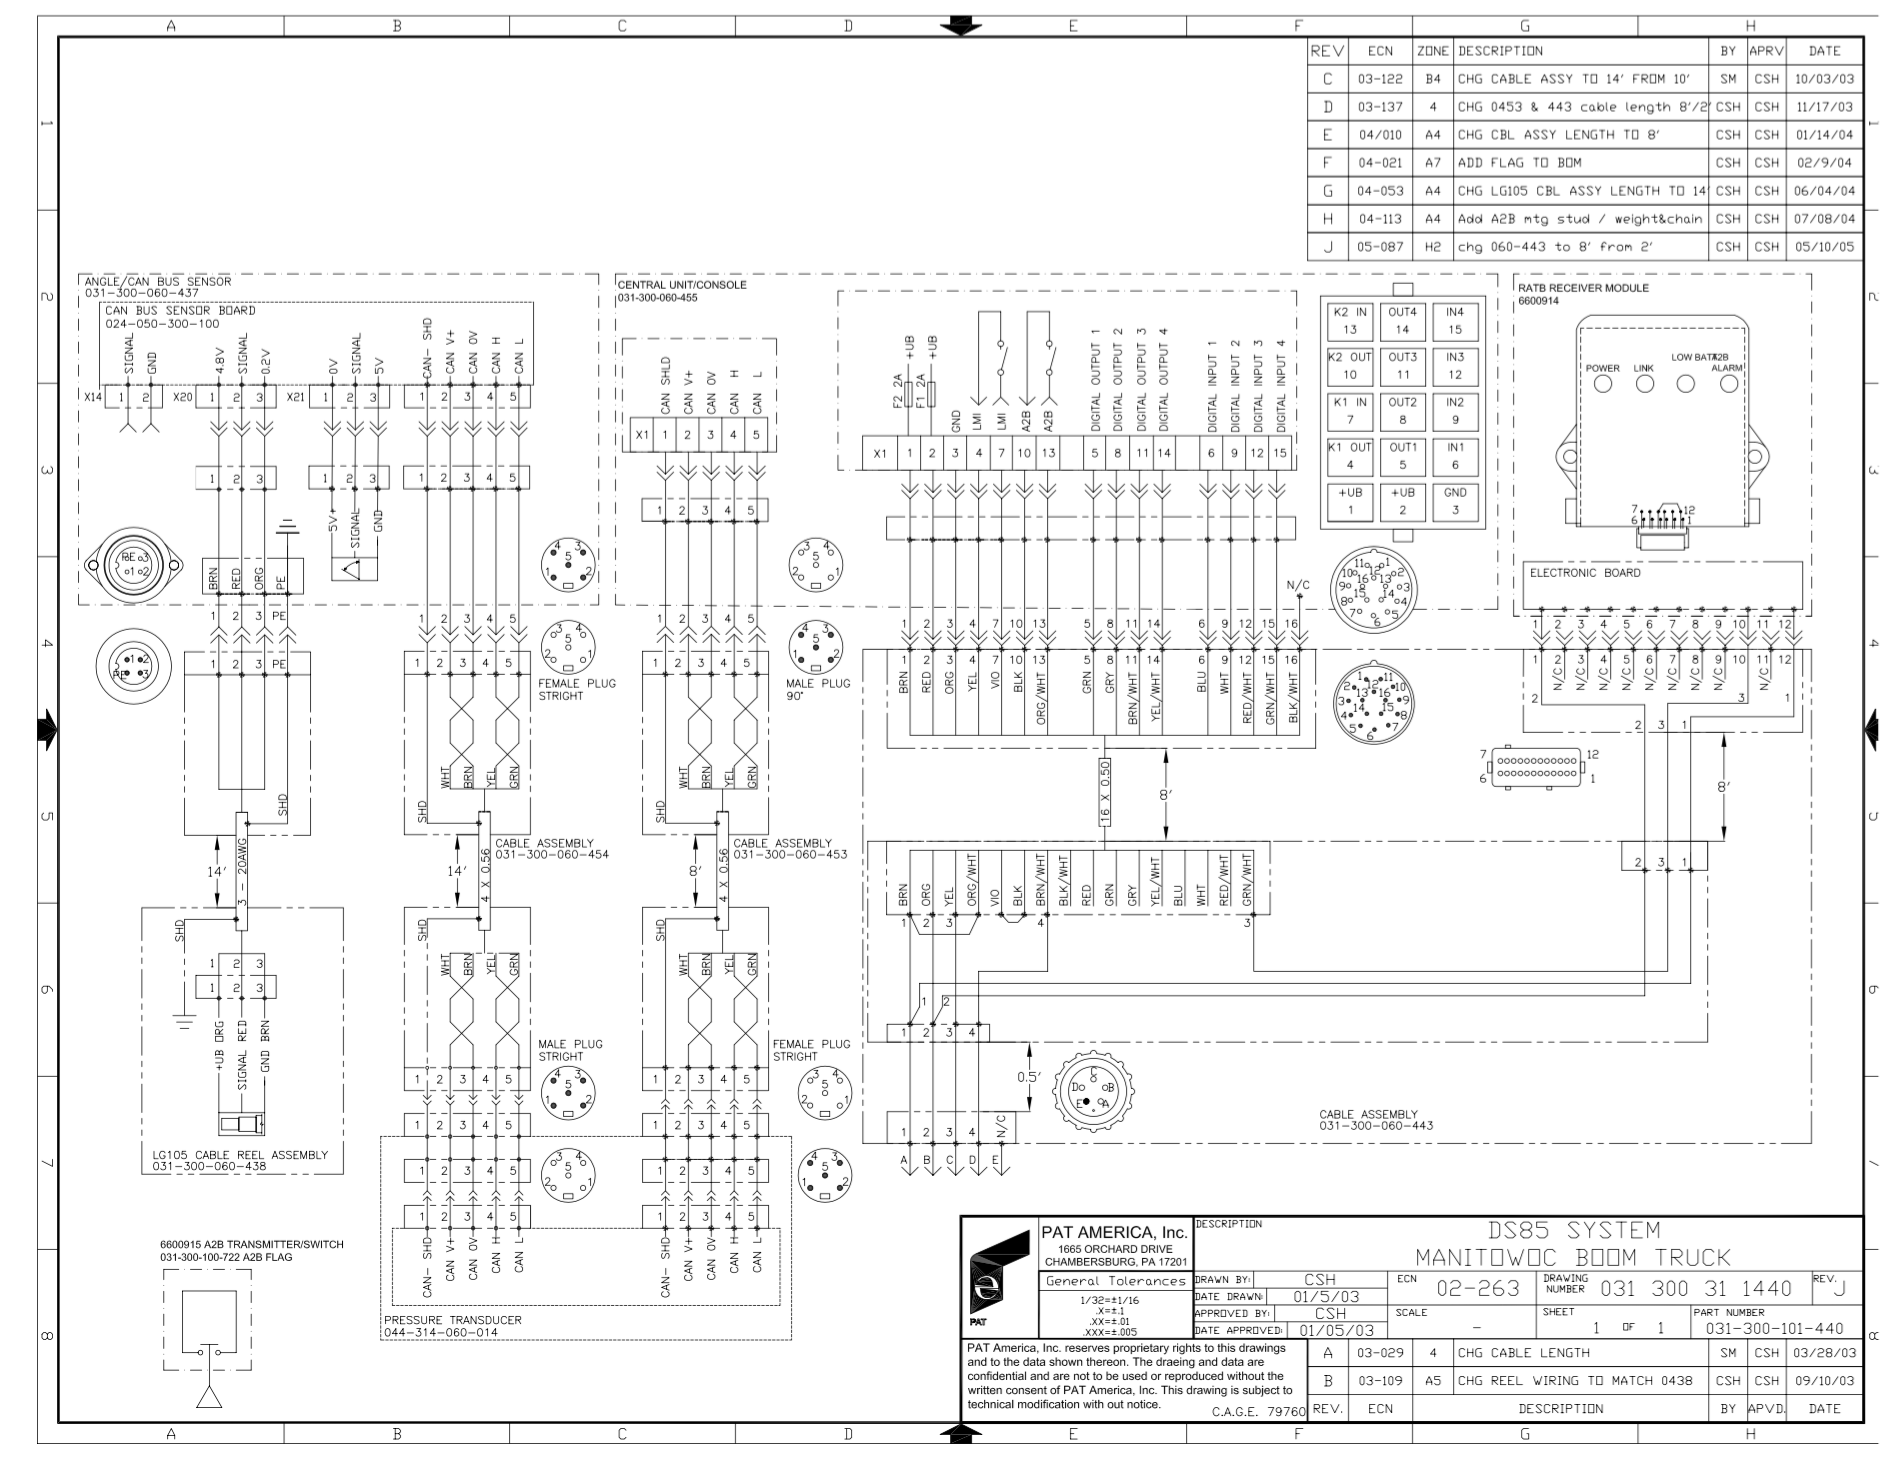 DIAGRAM] Vw Pat Wiring Diagram FULL Version HD Quality Wiring Diagram -  MERCADOPLIVRED.VECCHIAARENA.IT  vecchiaarena.it